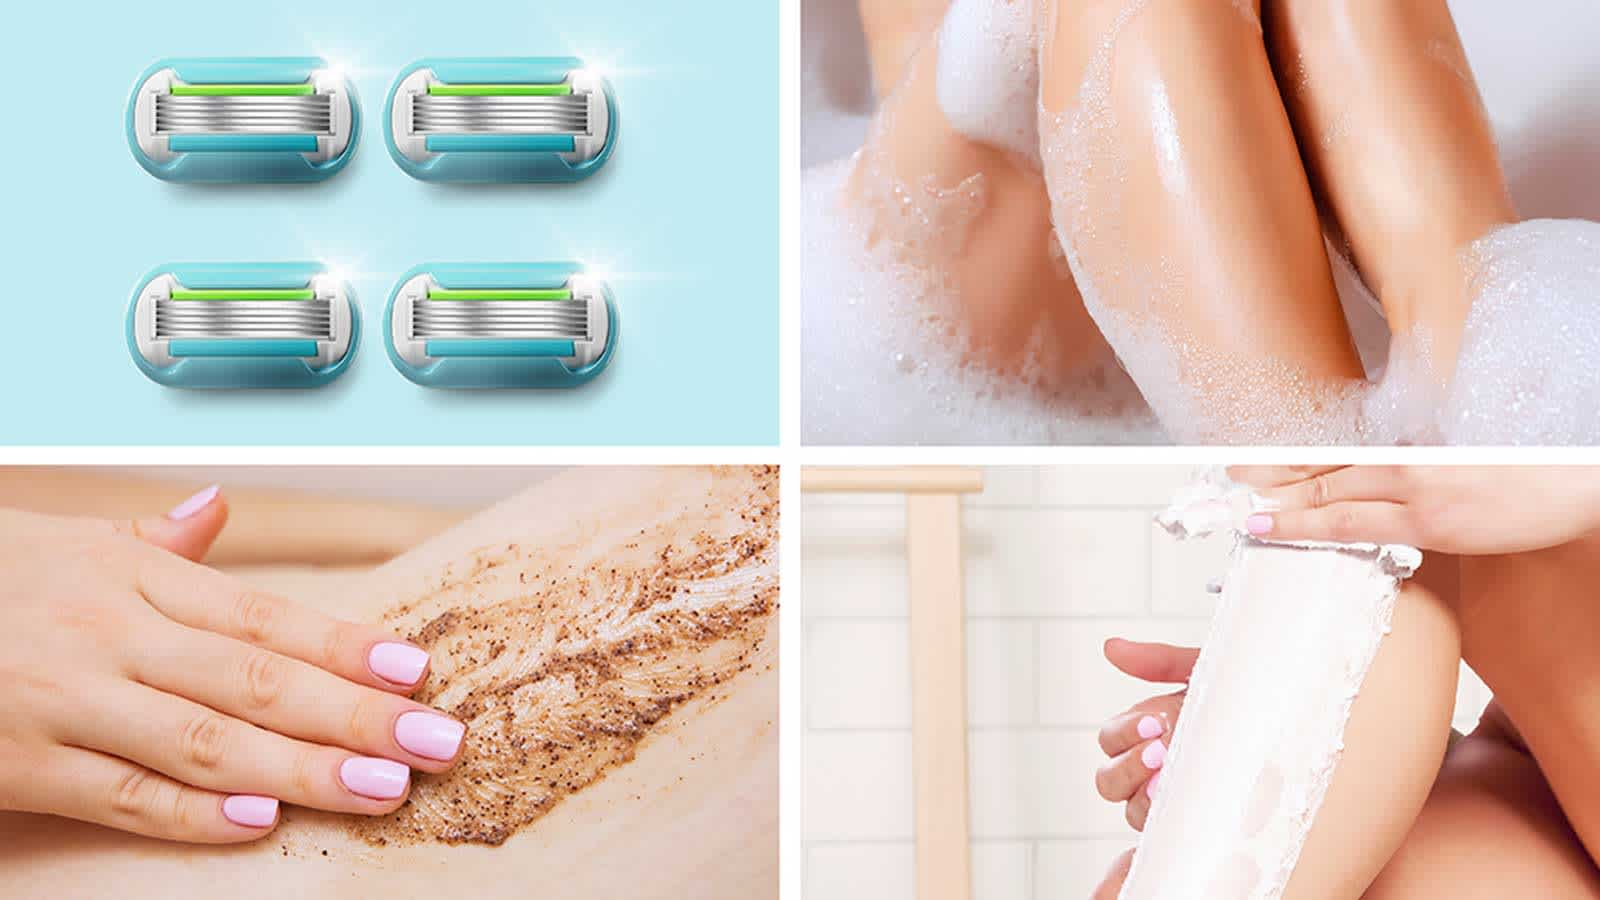 Best Practices to Prevent Ingrown Hairs